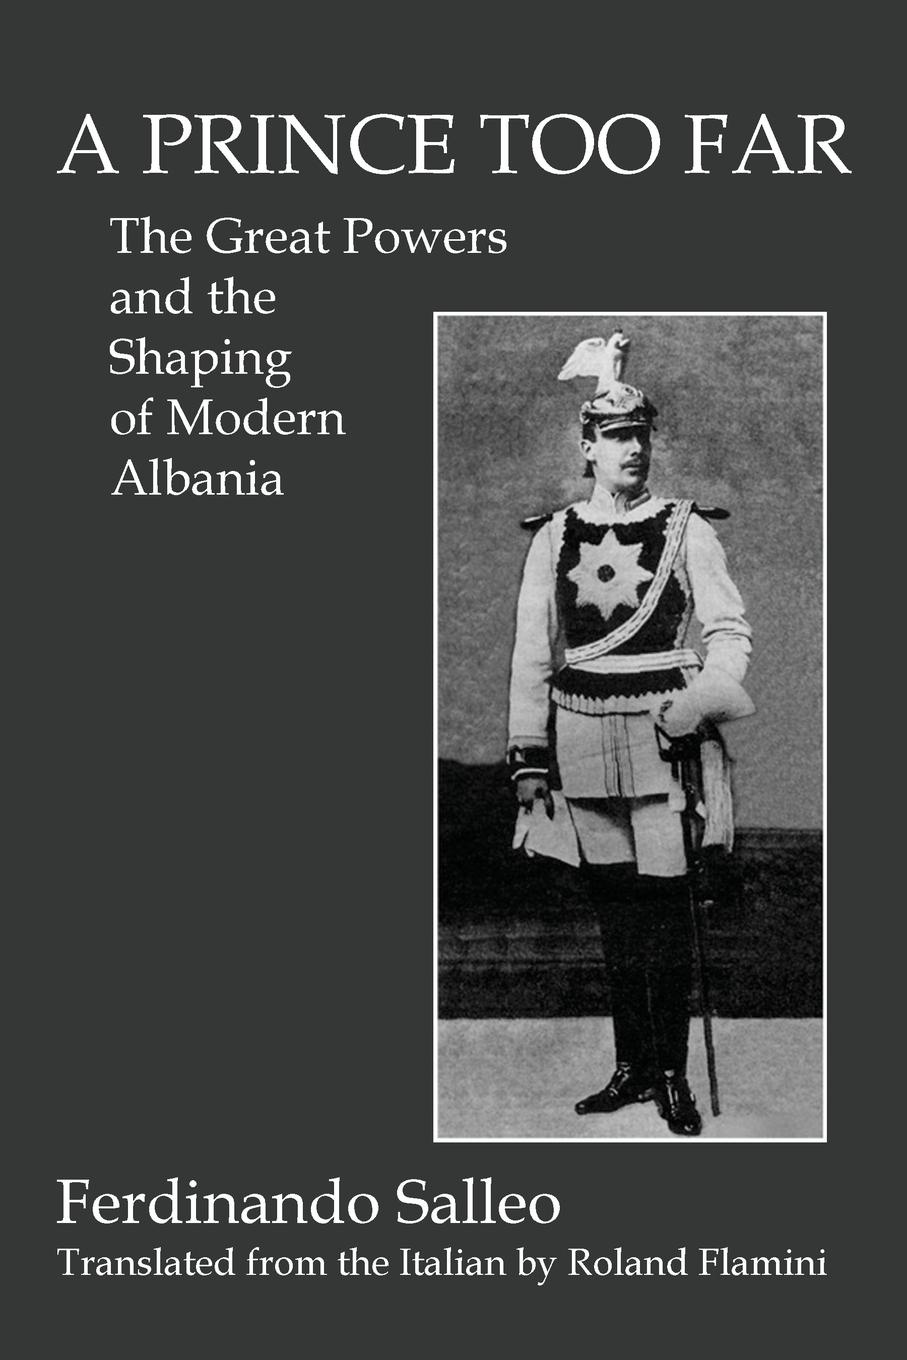 Ferdinando Salleo, Roland Flamini A PRINCE TOO FAR. The Great Powers and the Shaping of Modern Albania